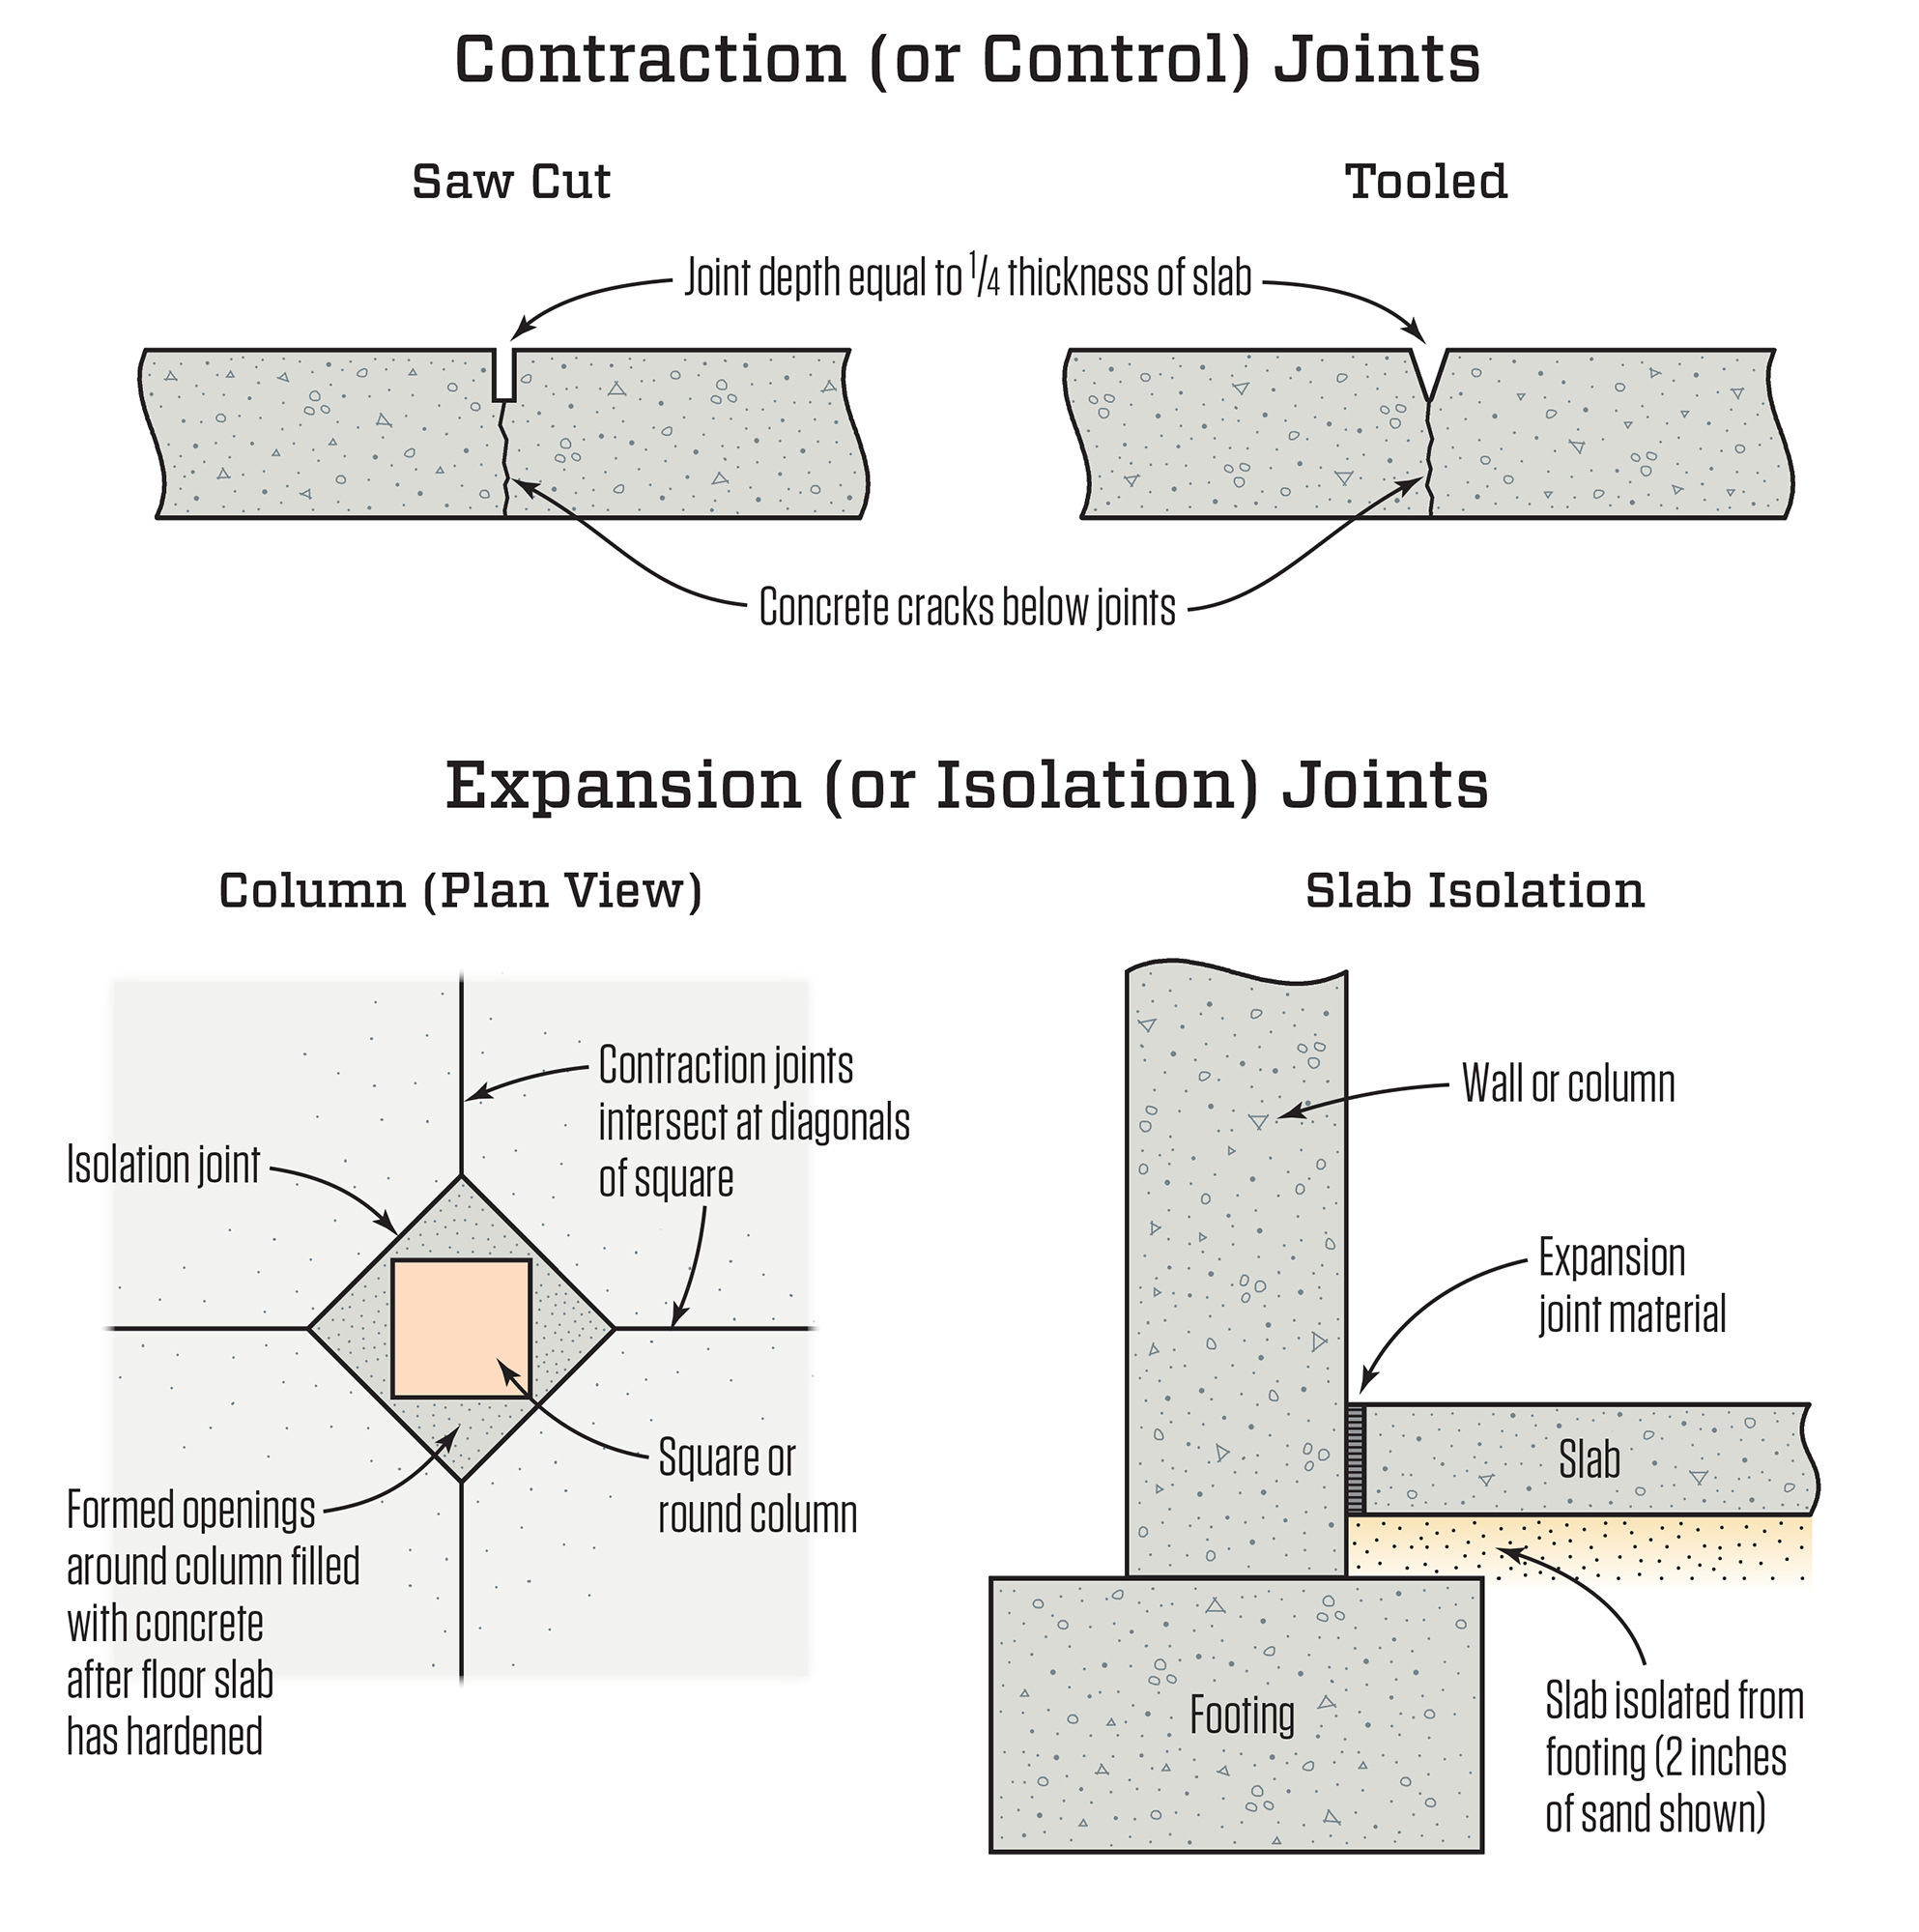 L Shaped Single Storey Homes Interior Design I J C Mobile: Joints In Concrete Slabs